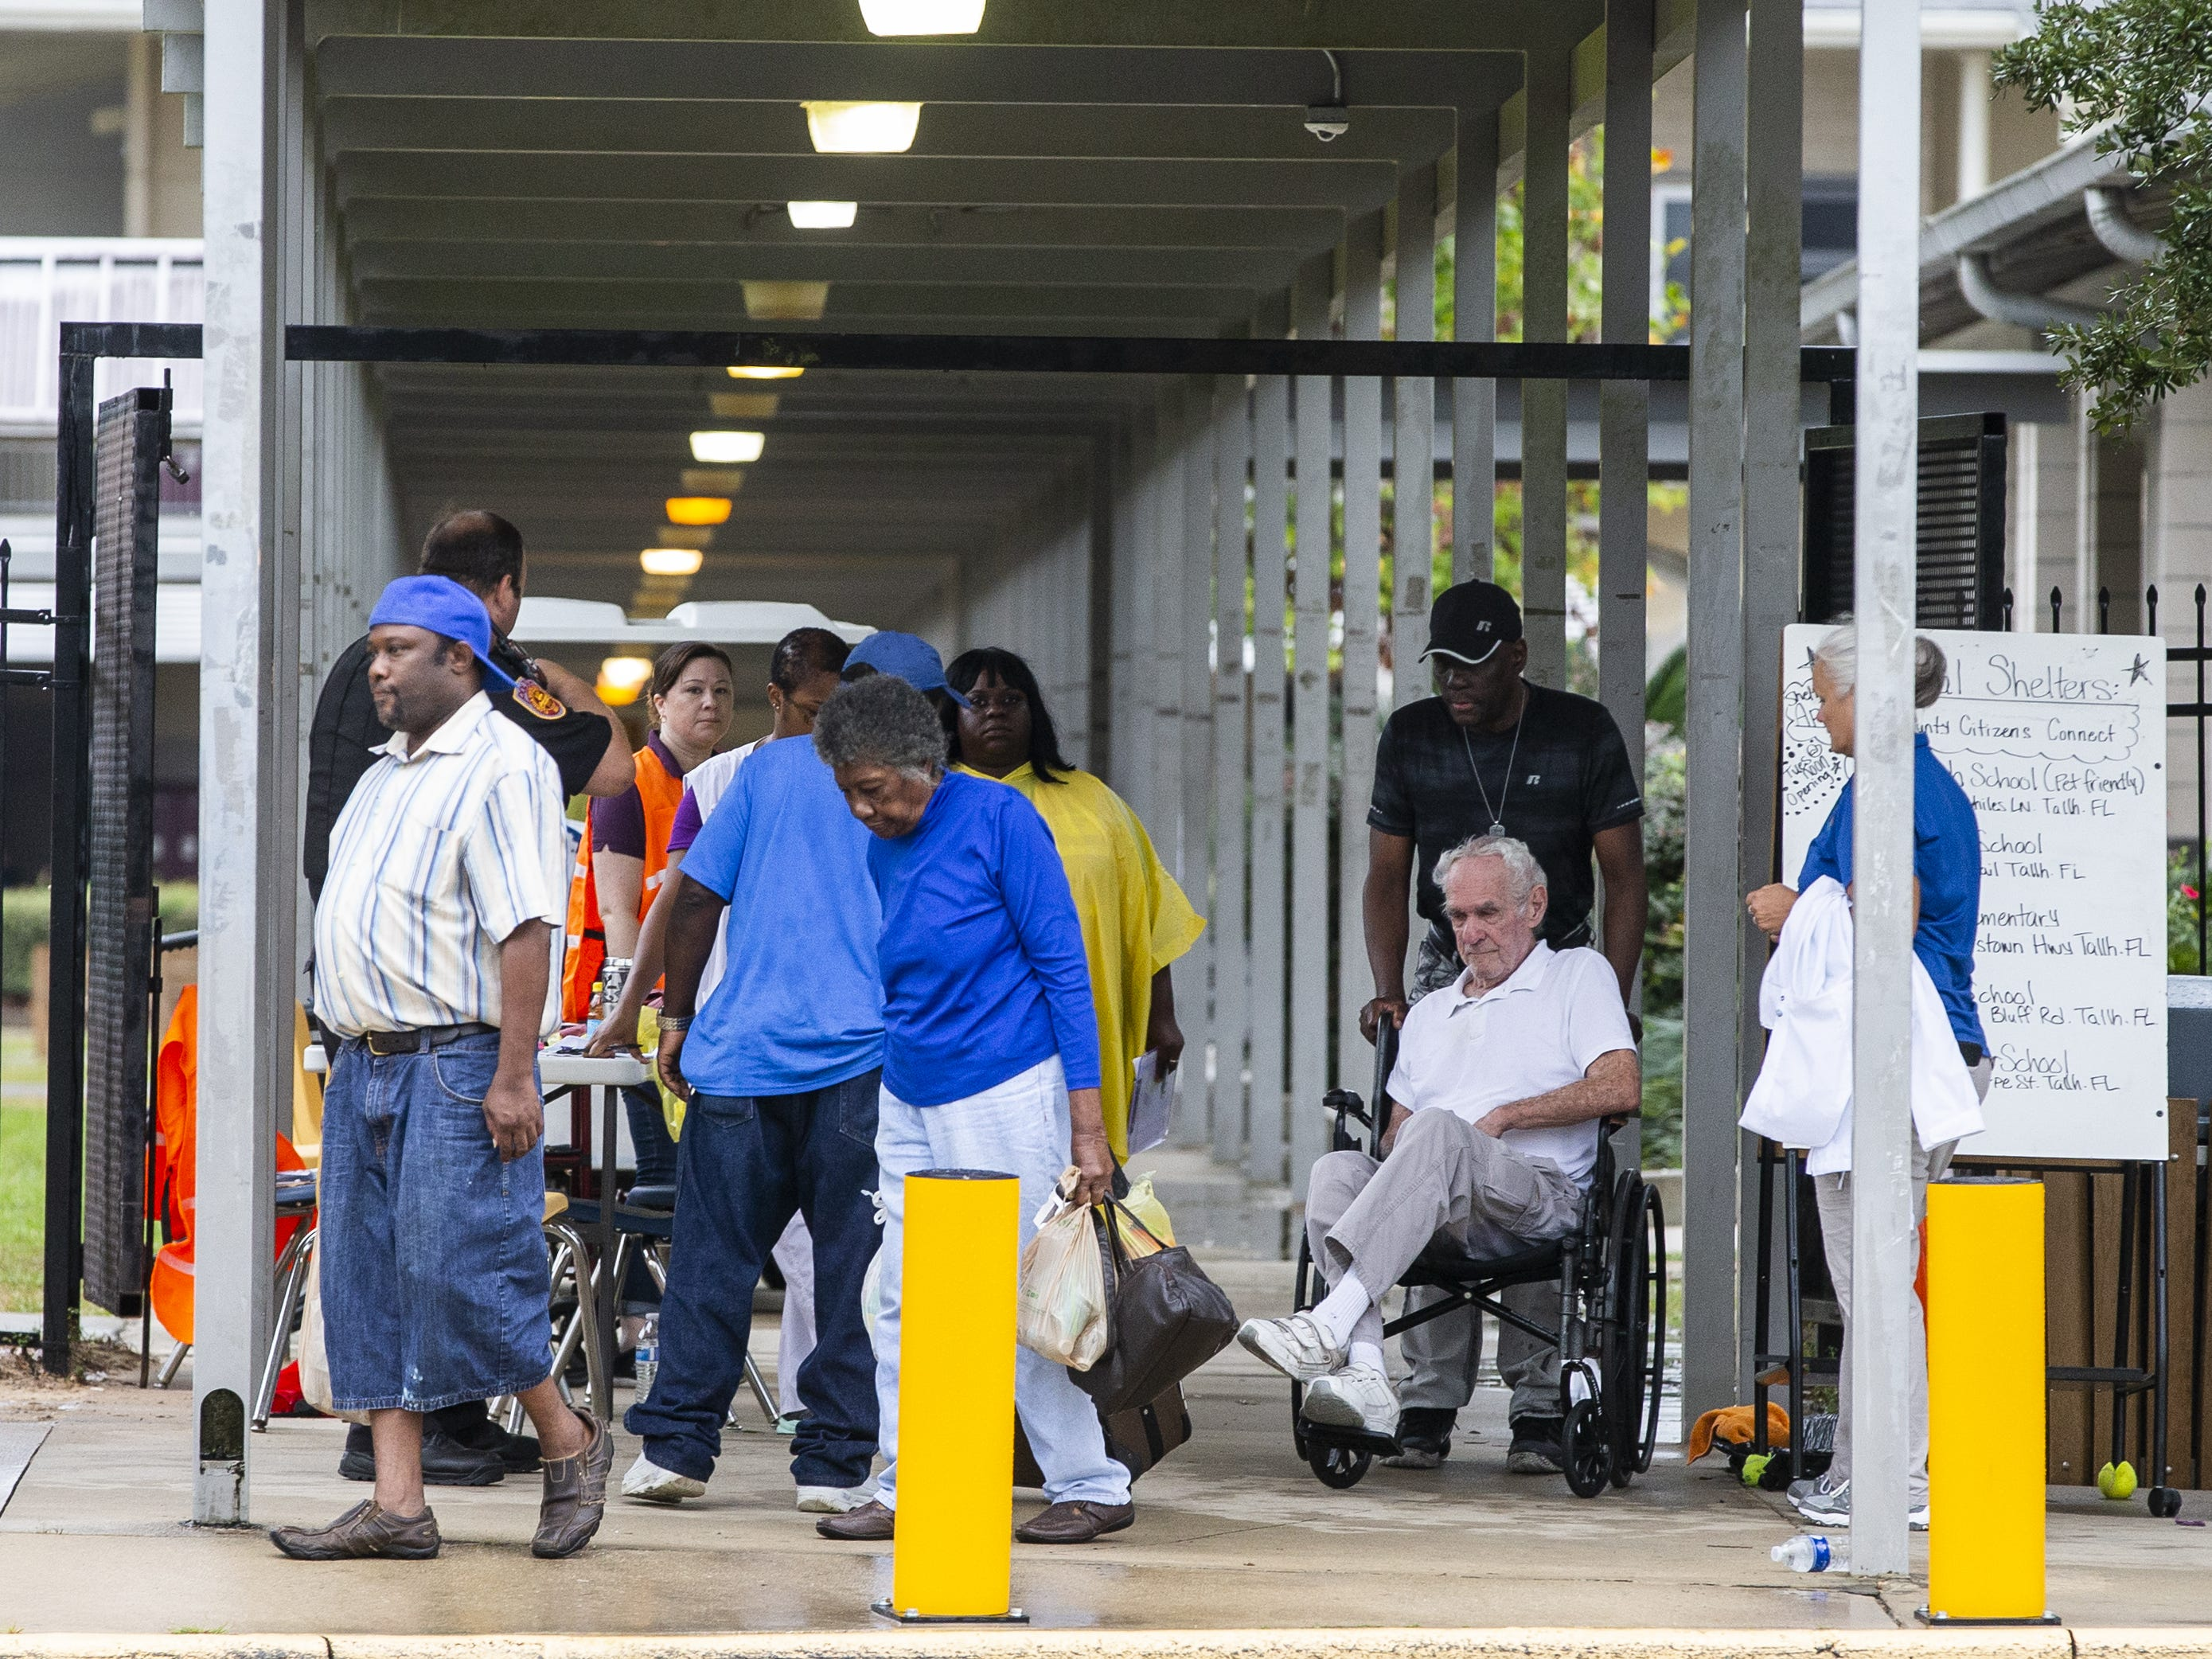 TALLAHASSEE, FL - OCTOBER 10: People arrives at a special needs shelter at Florida High School as Hurricane Michael approaches on October 10, 2018 in Tallahassee, Florida. The hurricane is forecast to hit the Florida Panhandle at a possible category 4 storm.  (Photo by Mark Wallheiser/Getty Images) ORG XMIT: 775240672 ORIG FILE ID: 1048878464